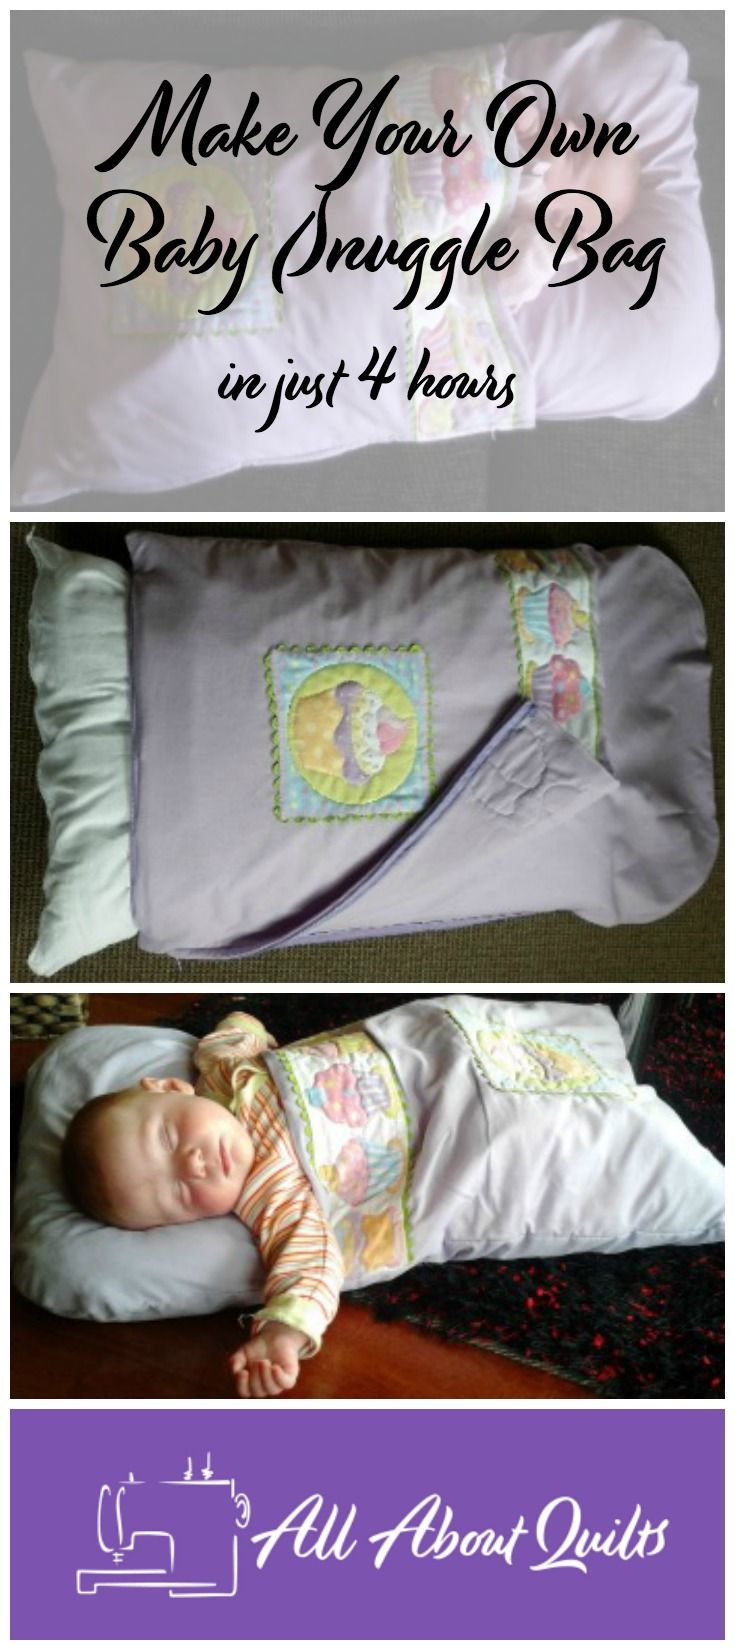 Make your own Baby Snuggle Bag for someone special, tutorial included.